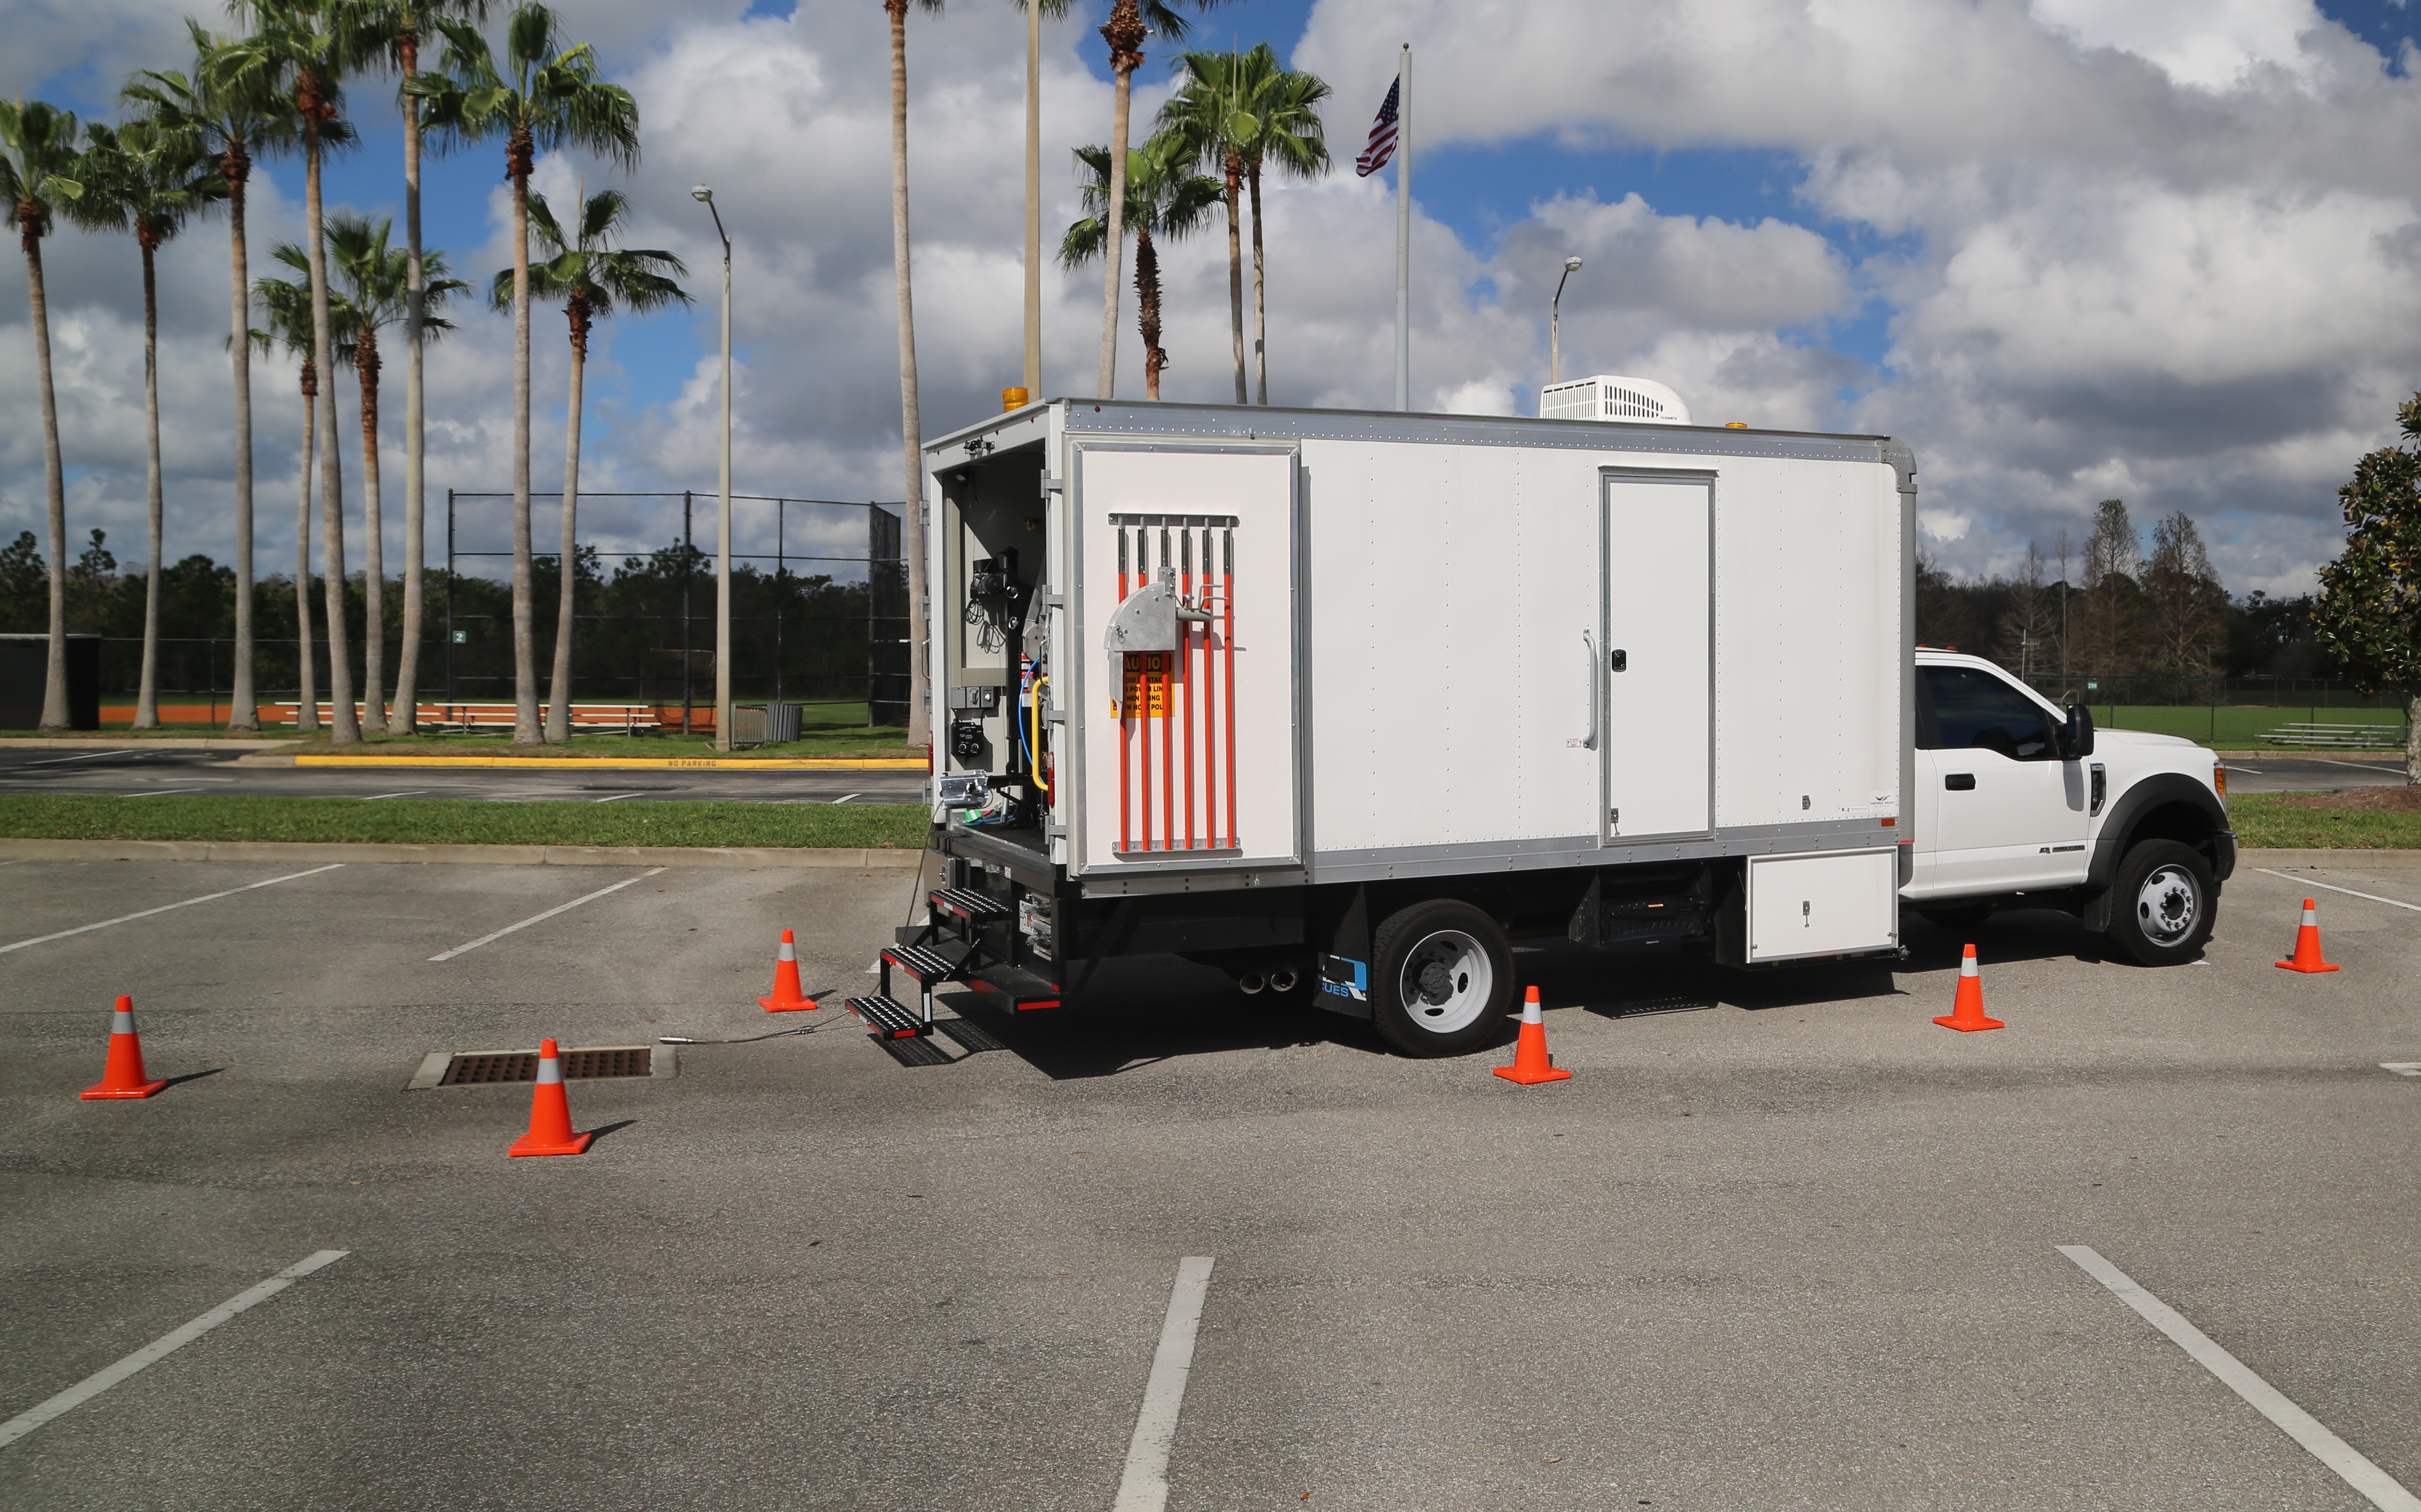 CUES Pre-Built, Demo and Trade_In Sewer and Pipeline Inspection Vehicles